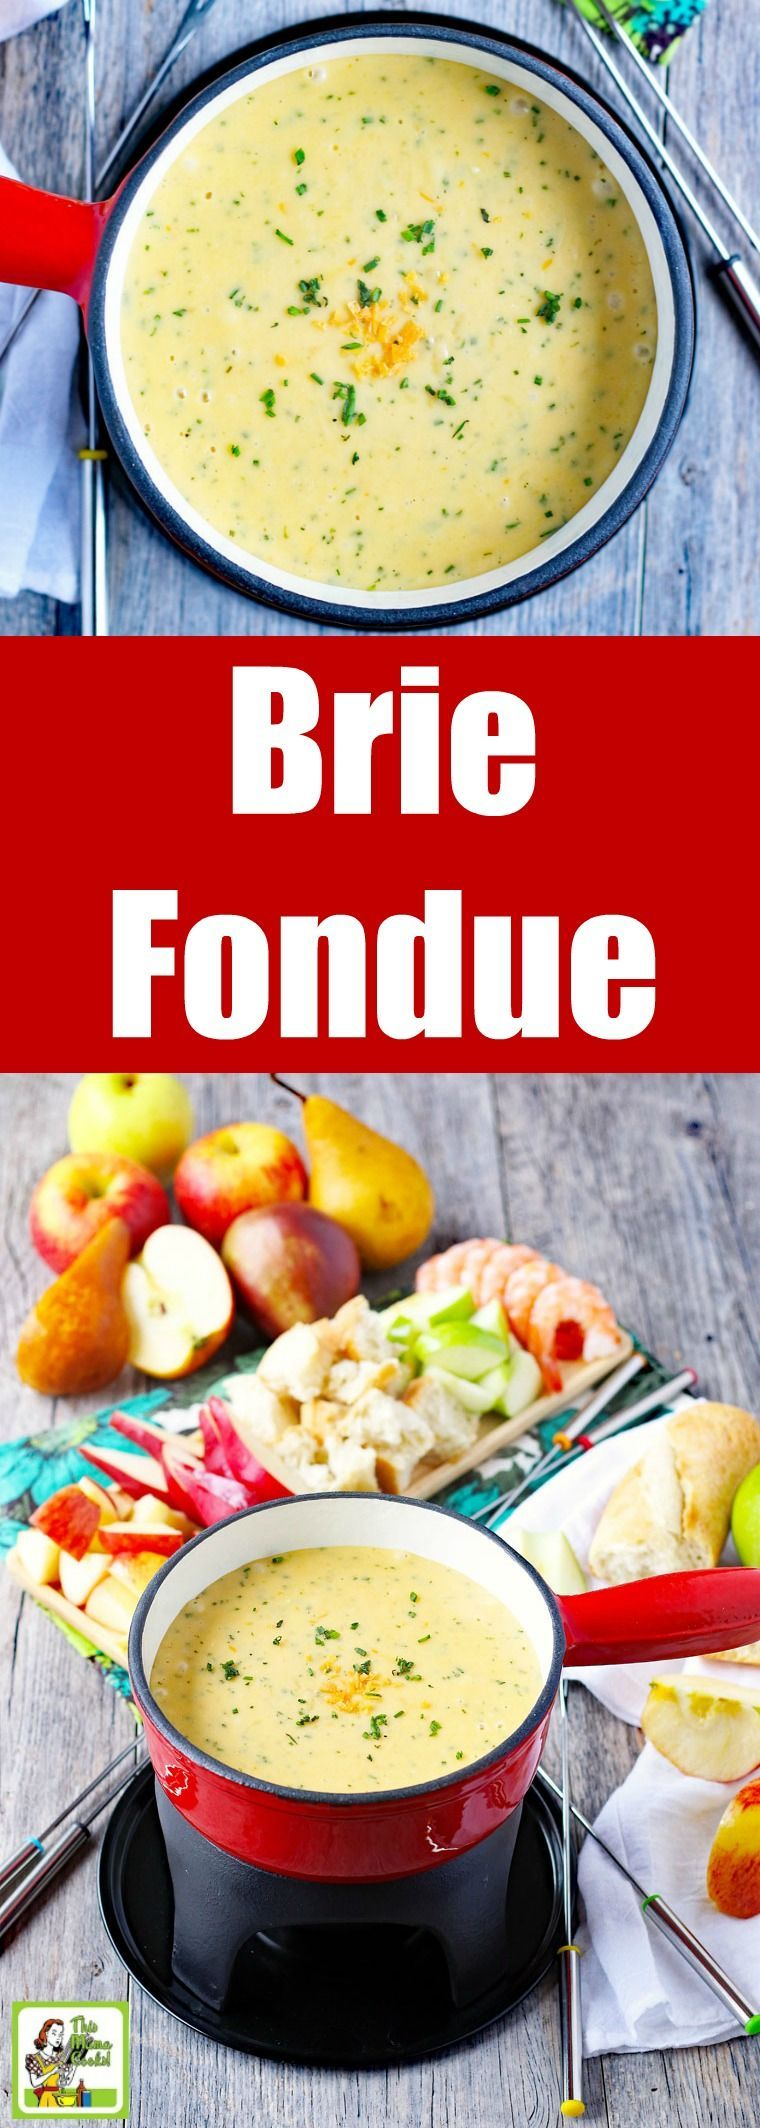 Make a pot of Brie amp Chive Fondue for your next party or a romantic dinner. This brie fondue recipe